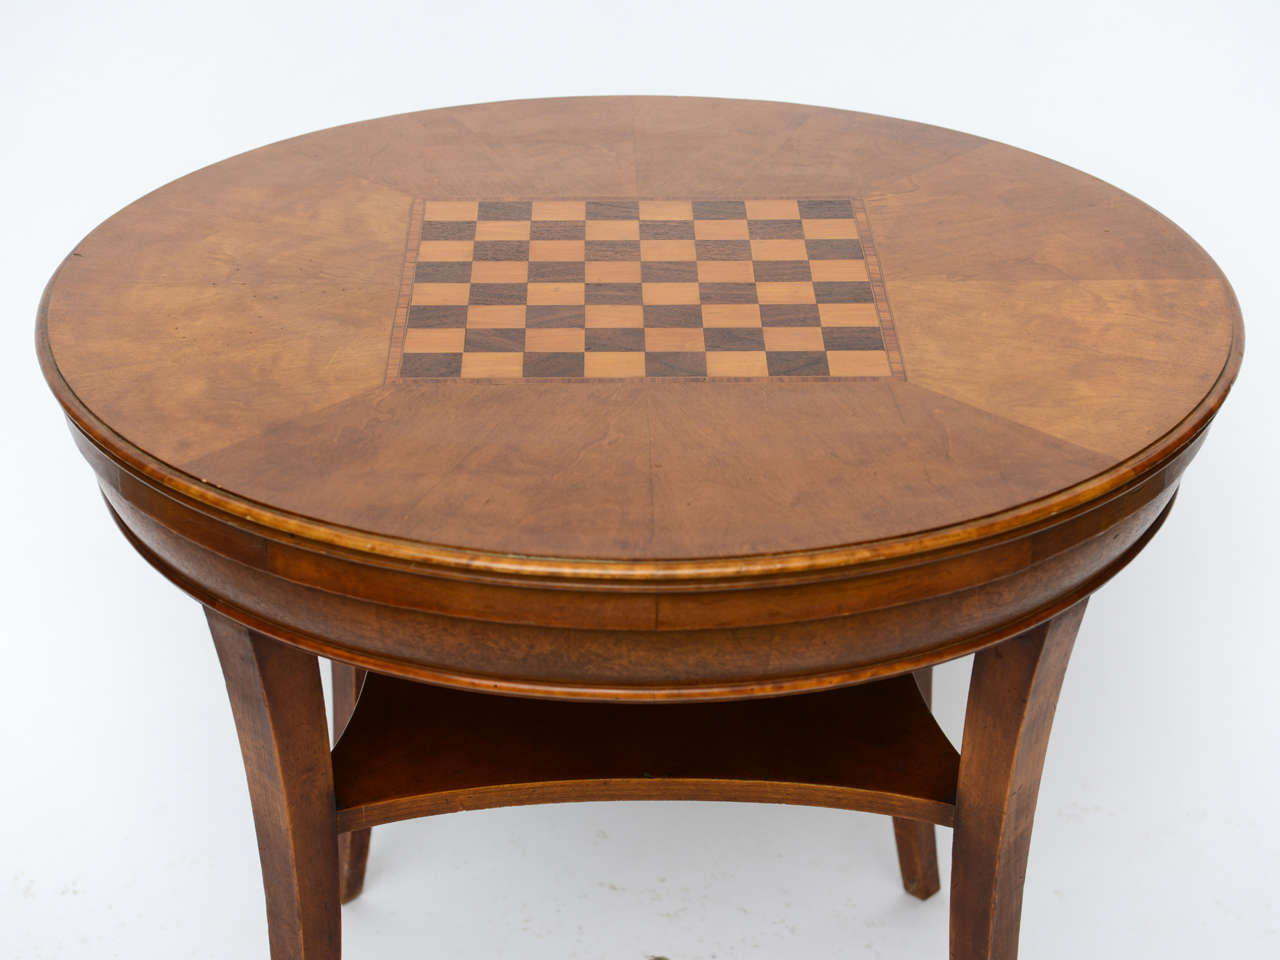 19th c rare american game side table hidden fold out